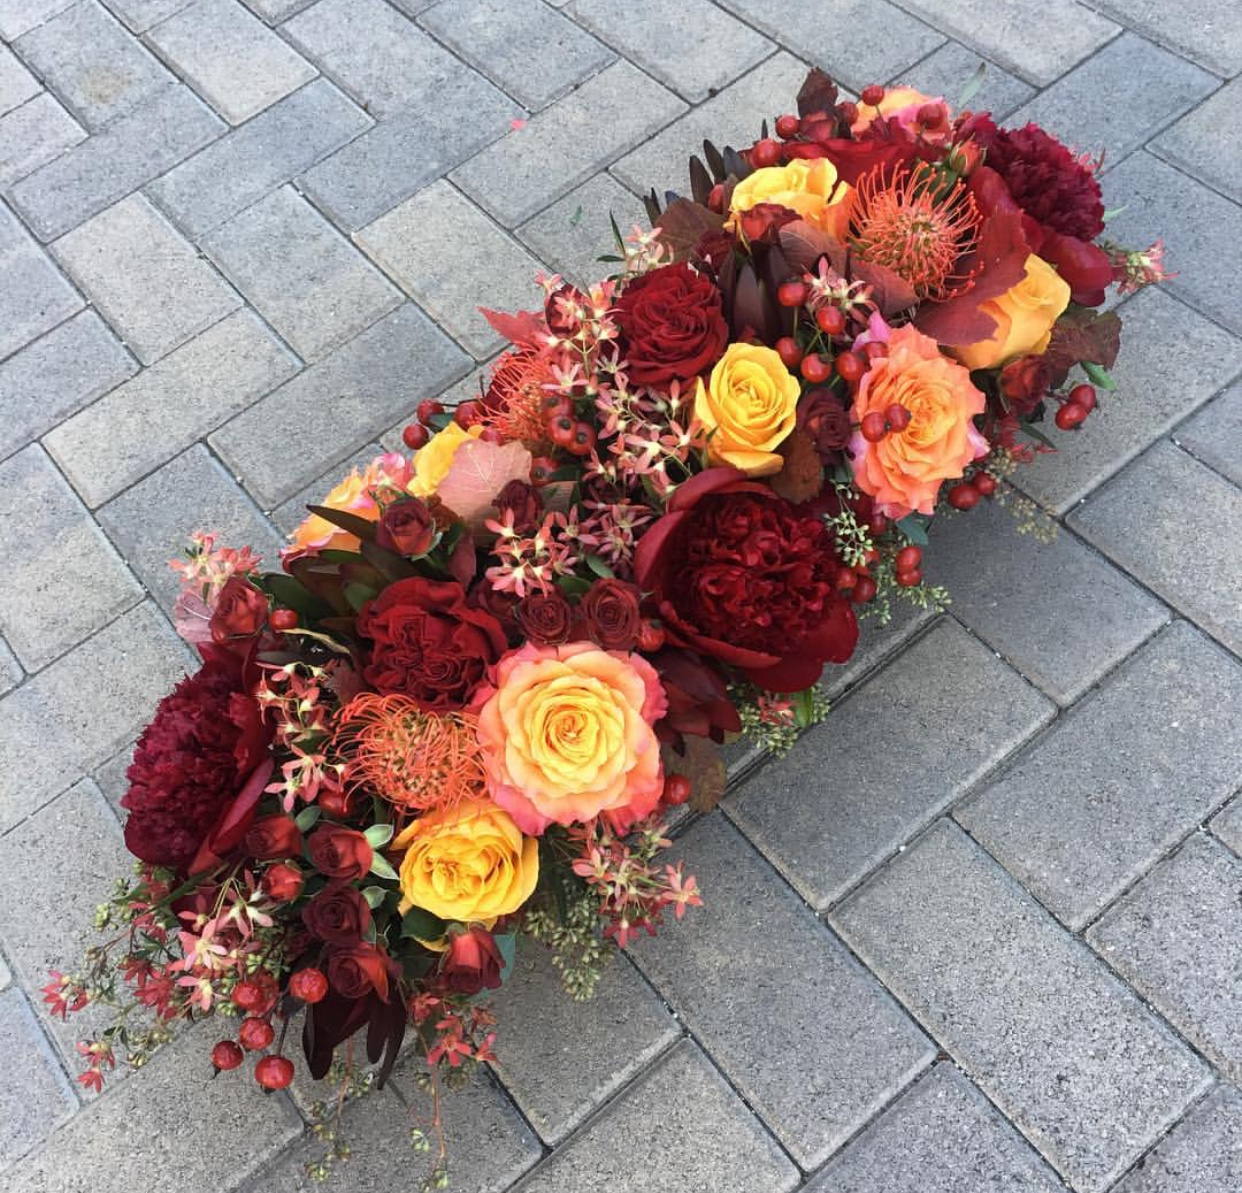 51. Autumnal Rectangular Centerpiece